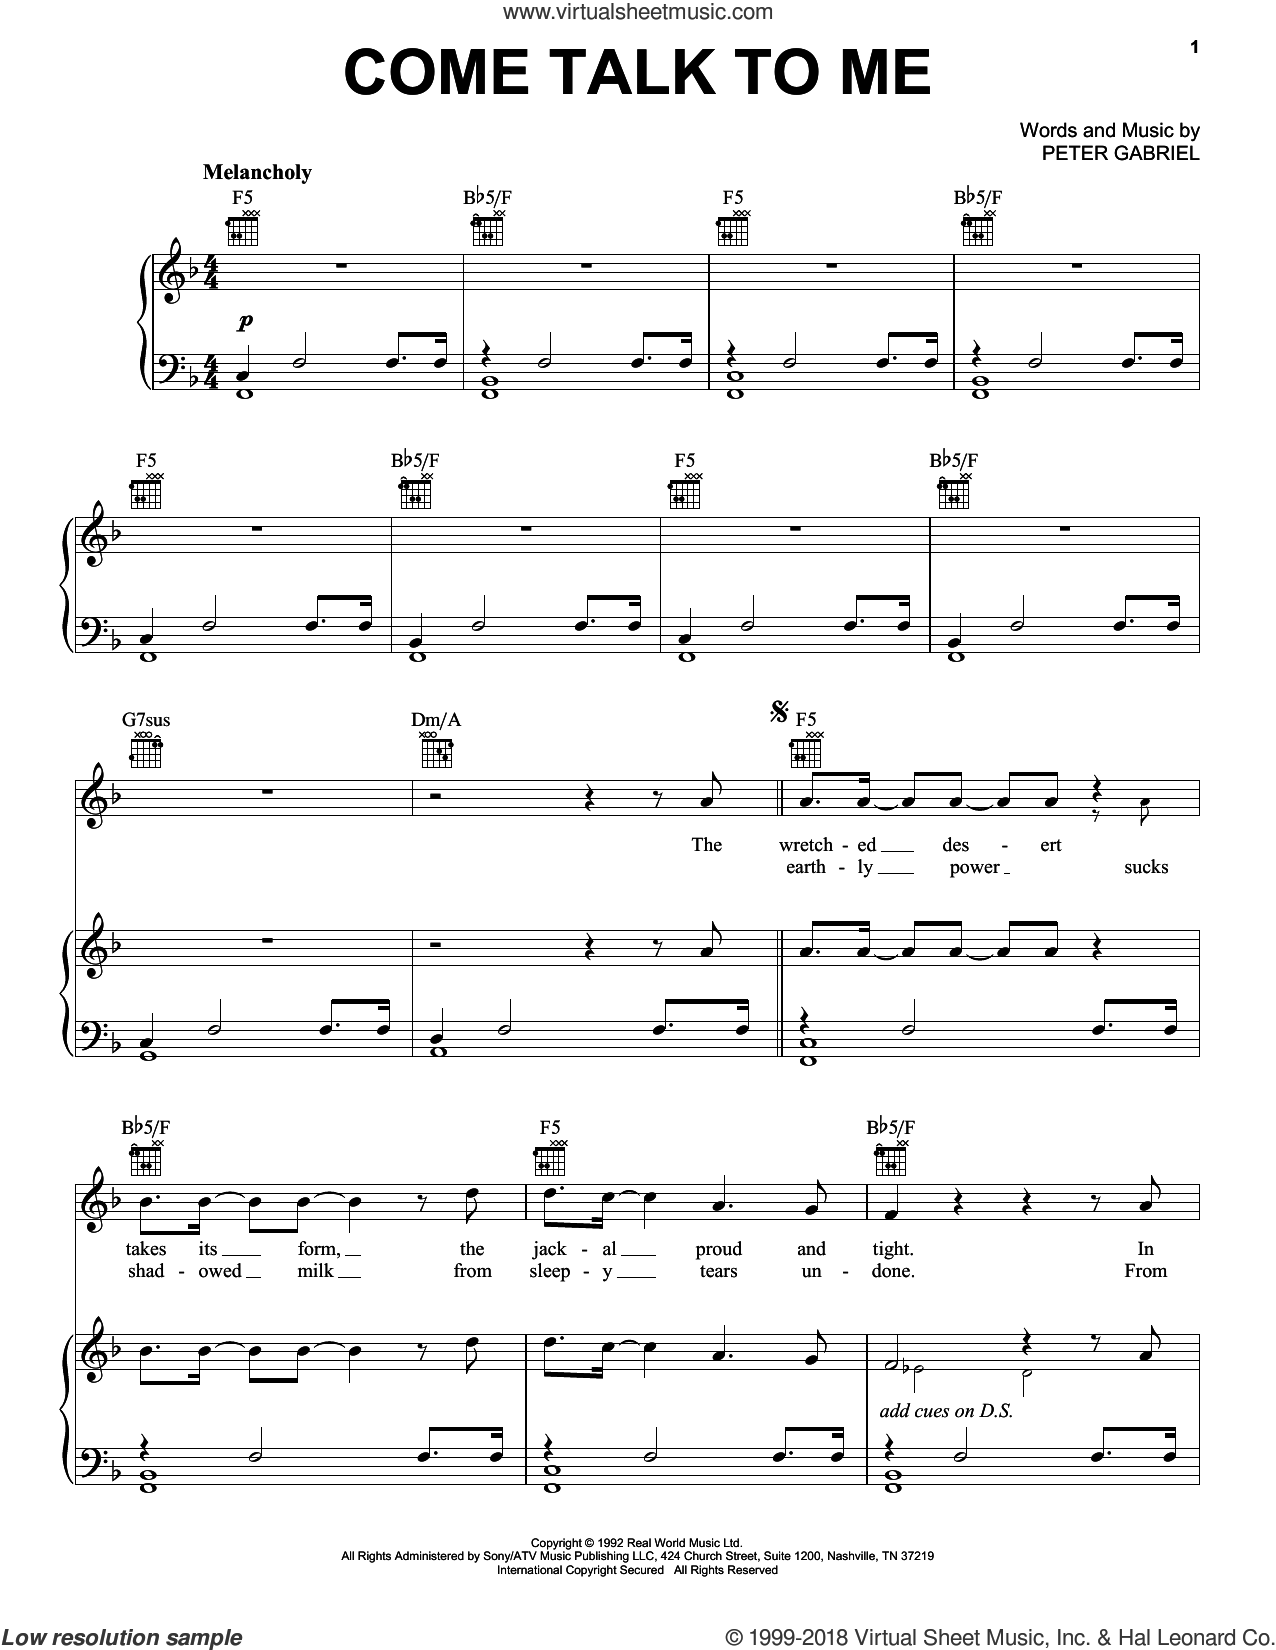 Come Talk To Me sheet music for voice, piano or guitar by Peter Gabriel, intermediate skill level